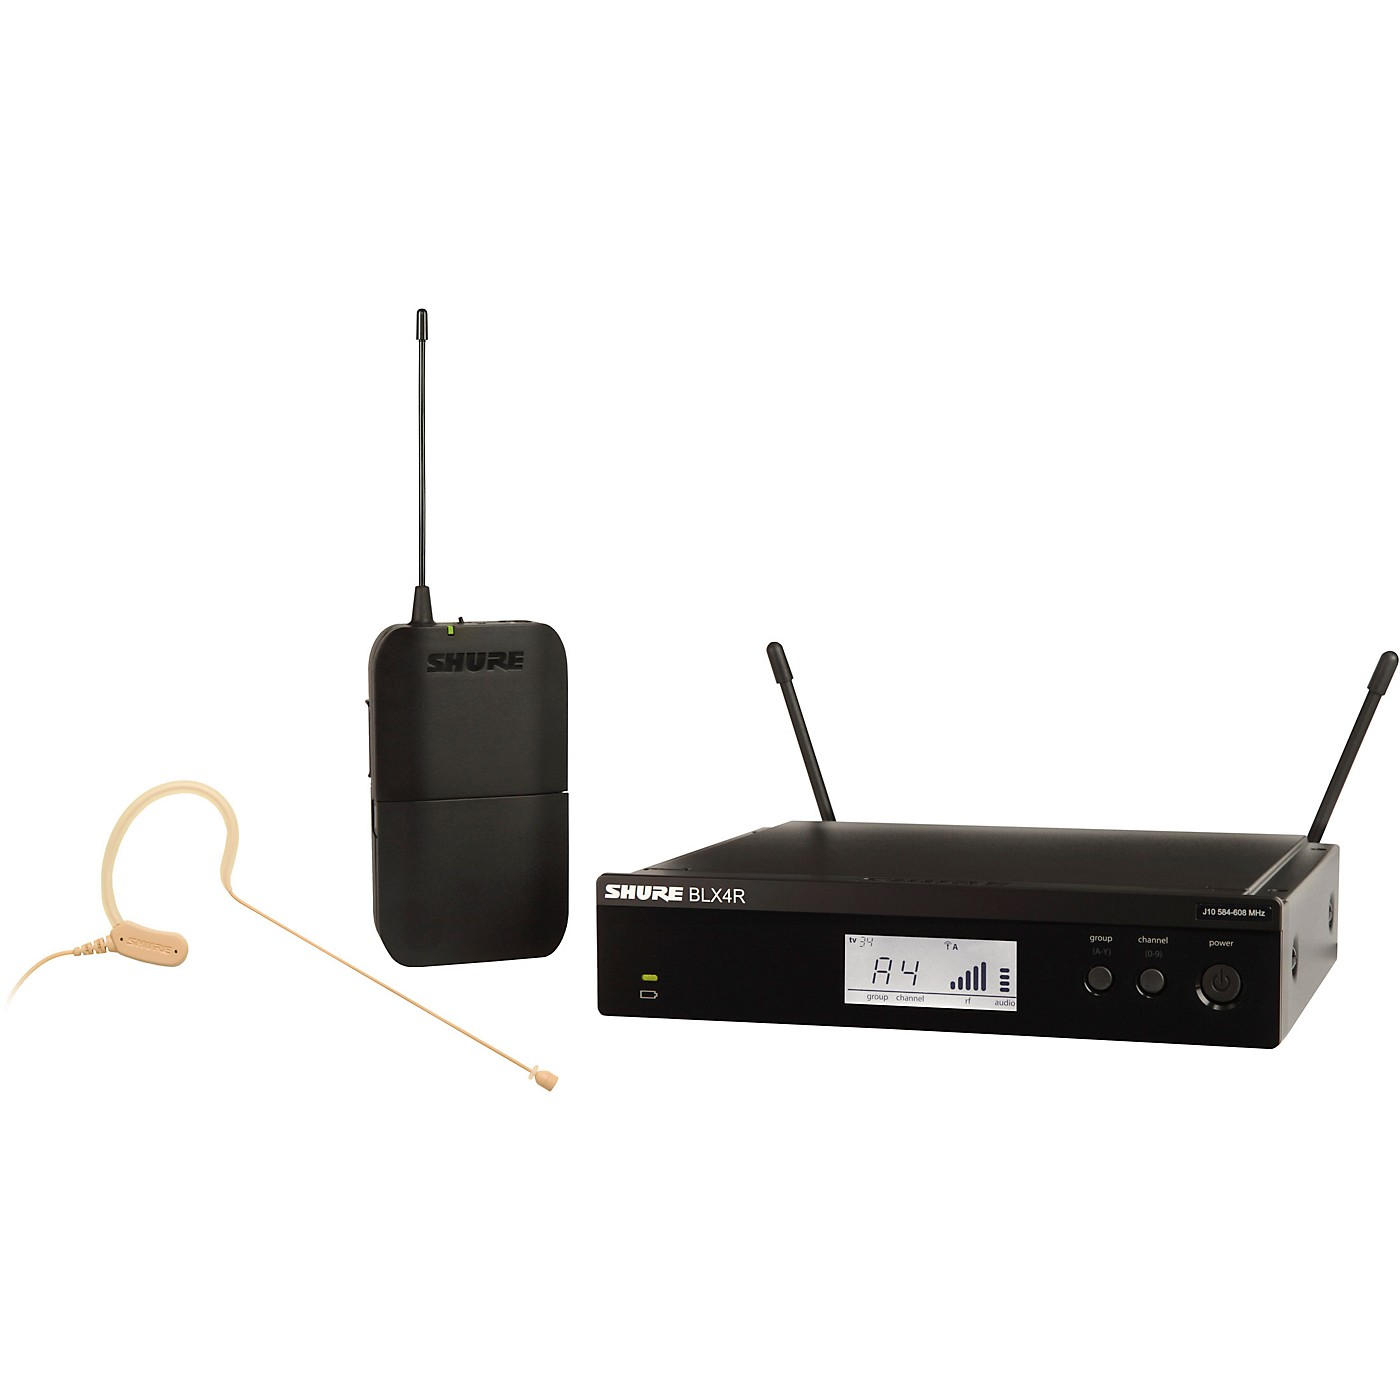 Shure BLX14R/MX53 Wireless Headset System with MX153 Headset Mic thumbnail